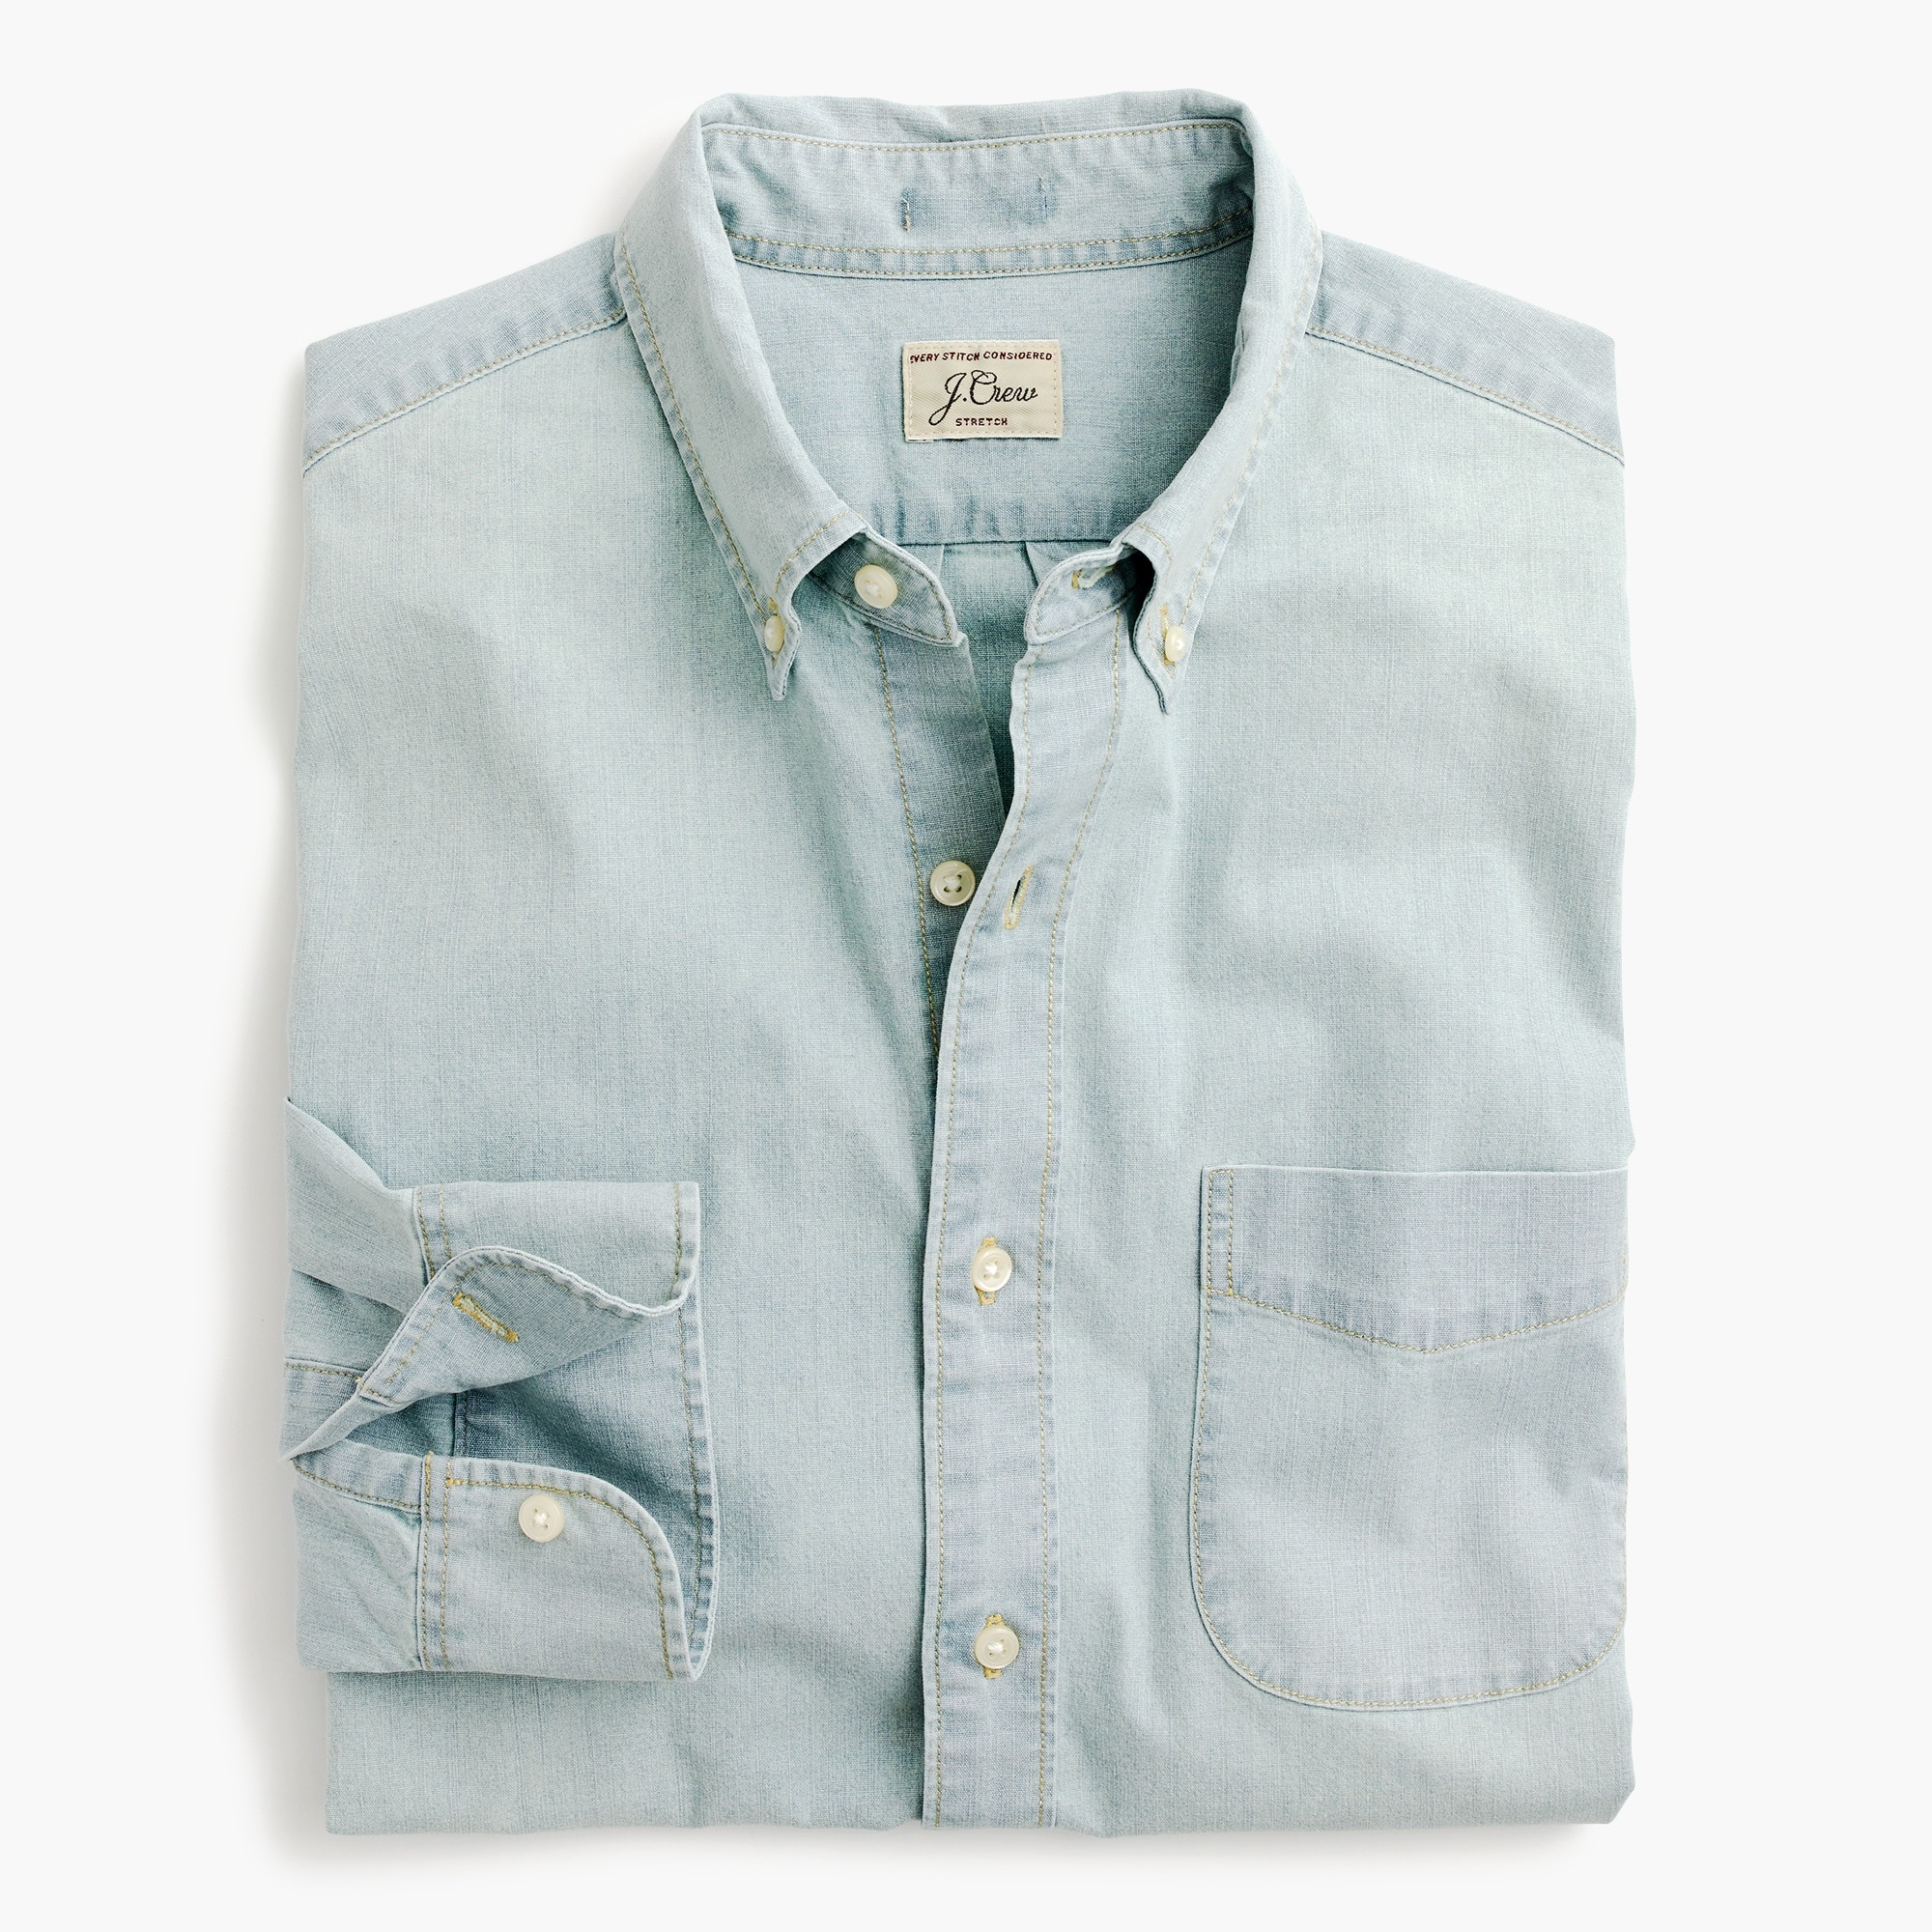 mens Slim light wash stretch chambray shirt